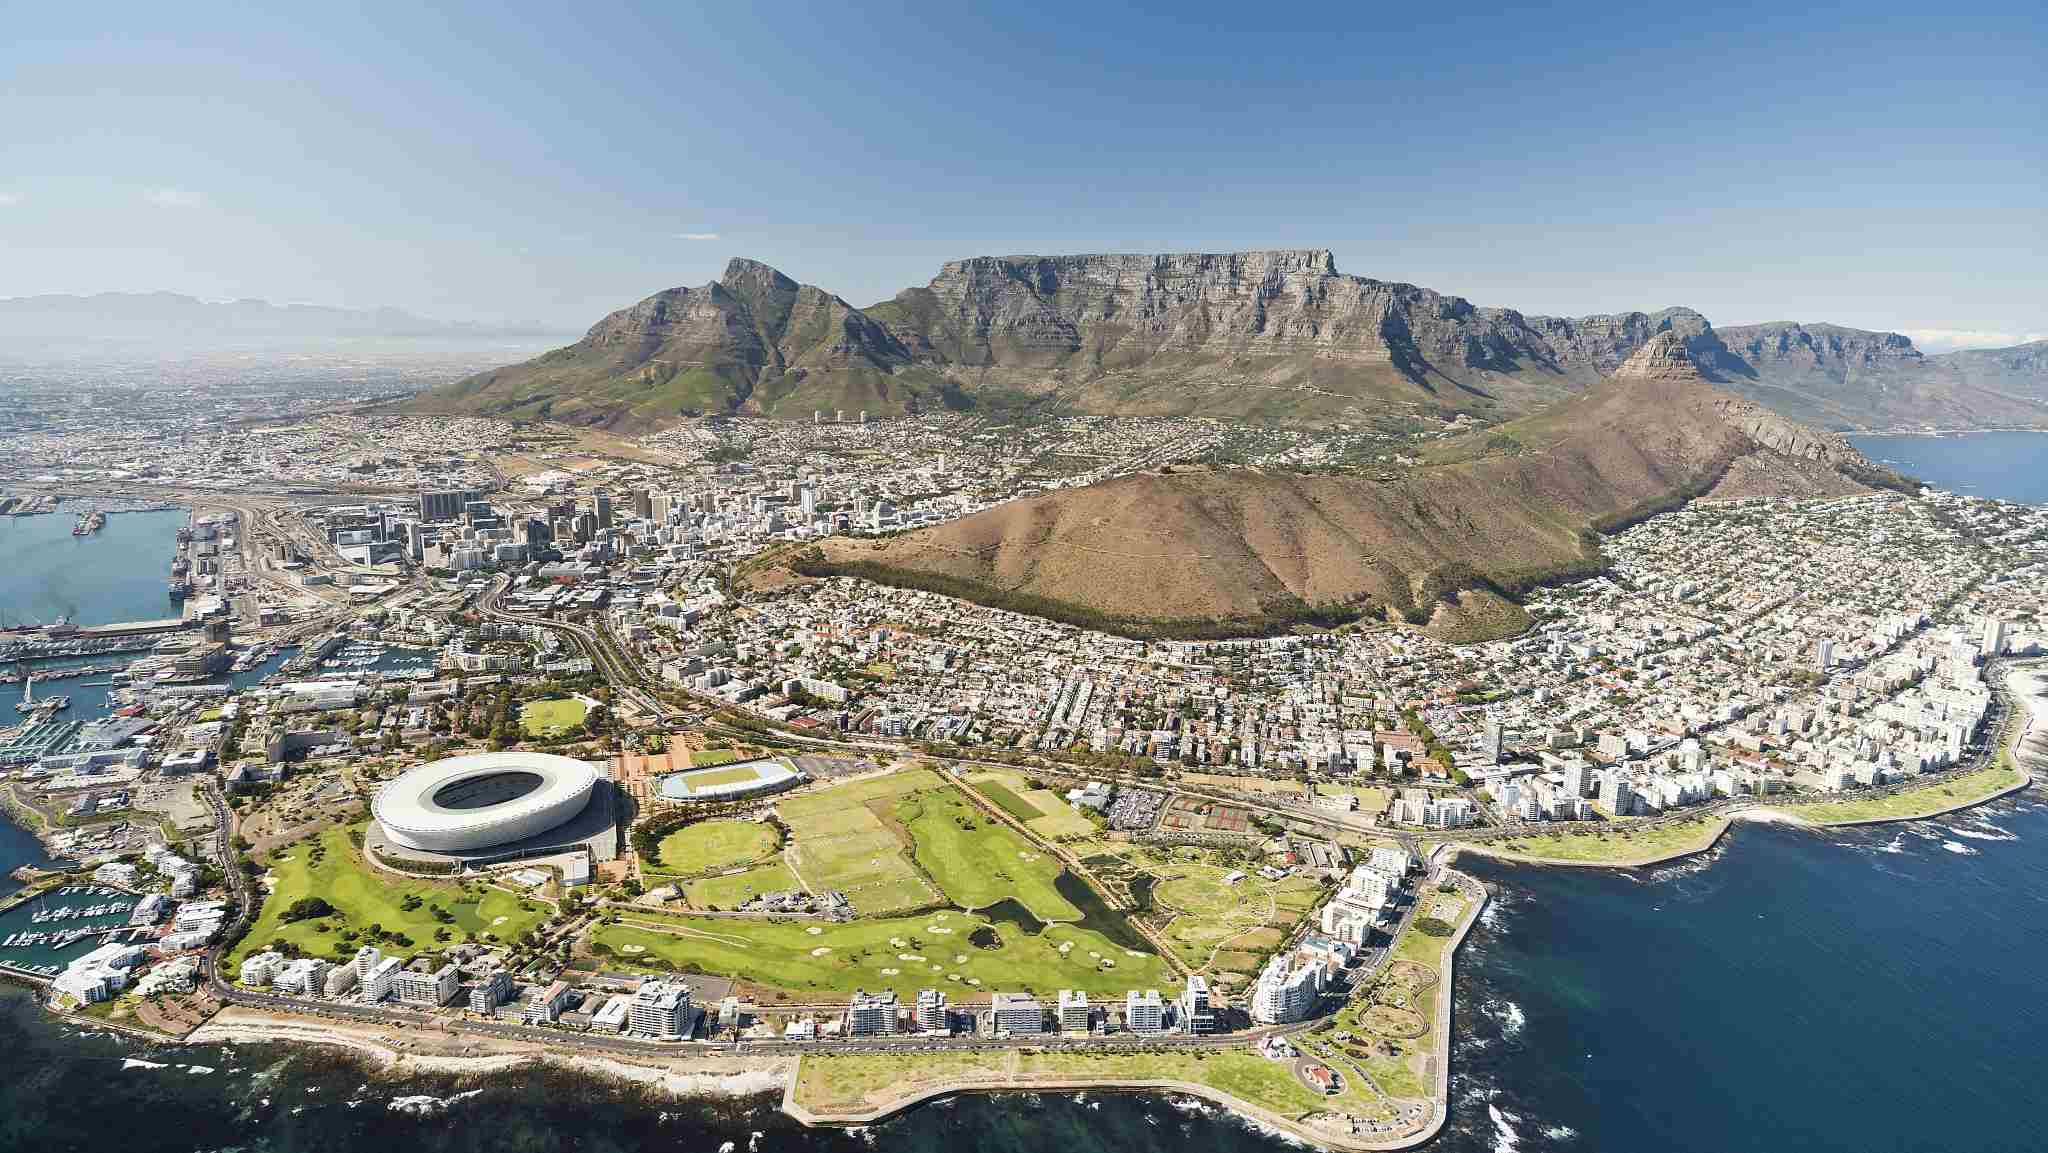 South Africa to introduce new visa policies for Chinese